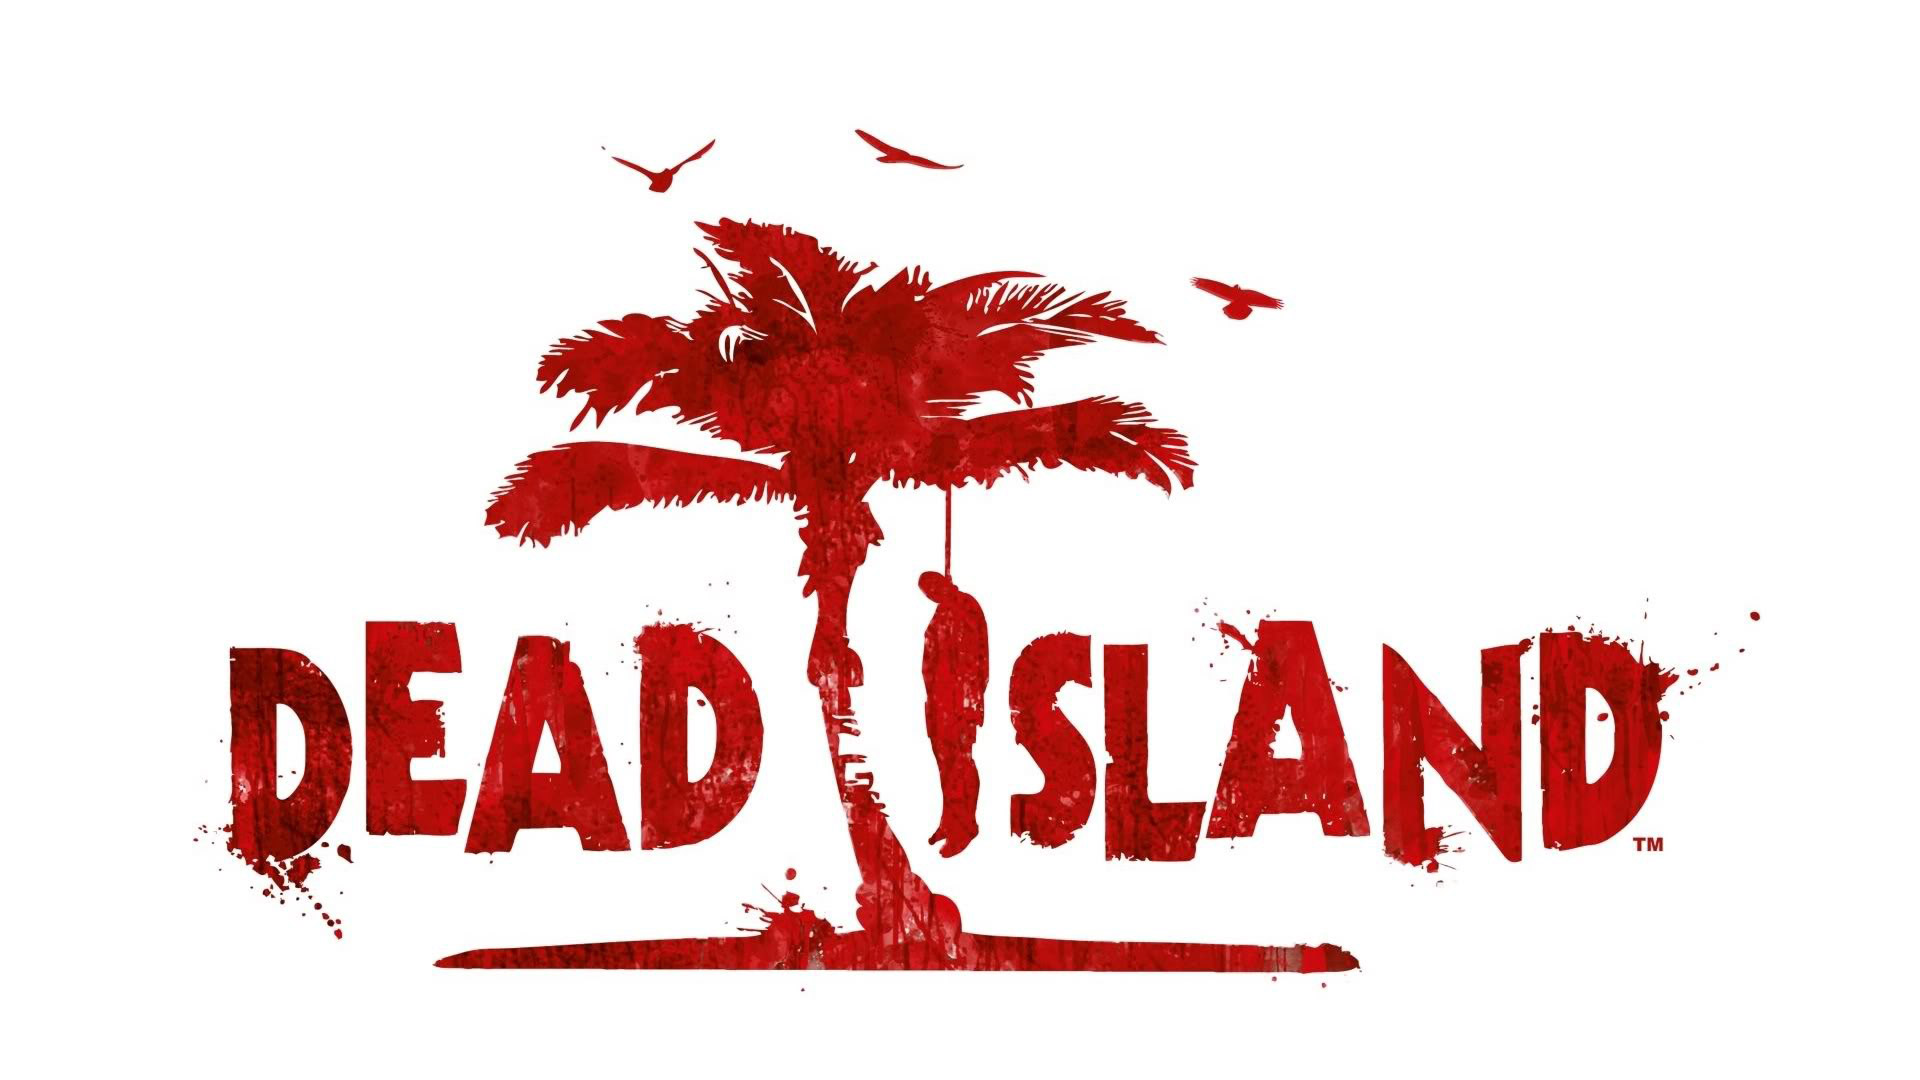 Dead Island Wallpaper in 1920x1080